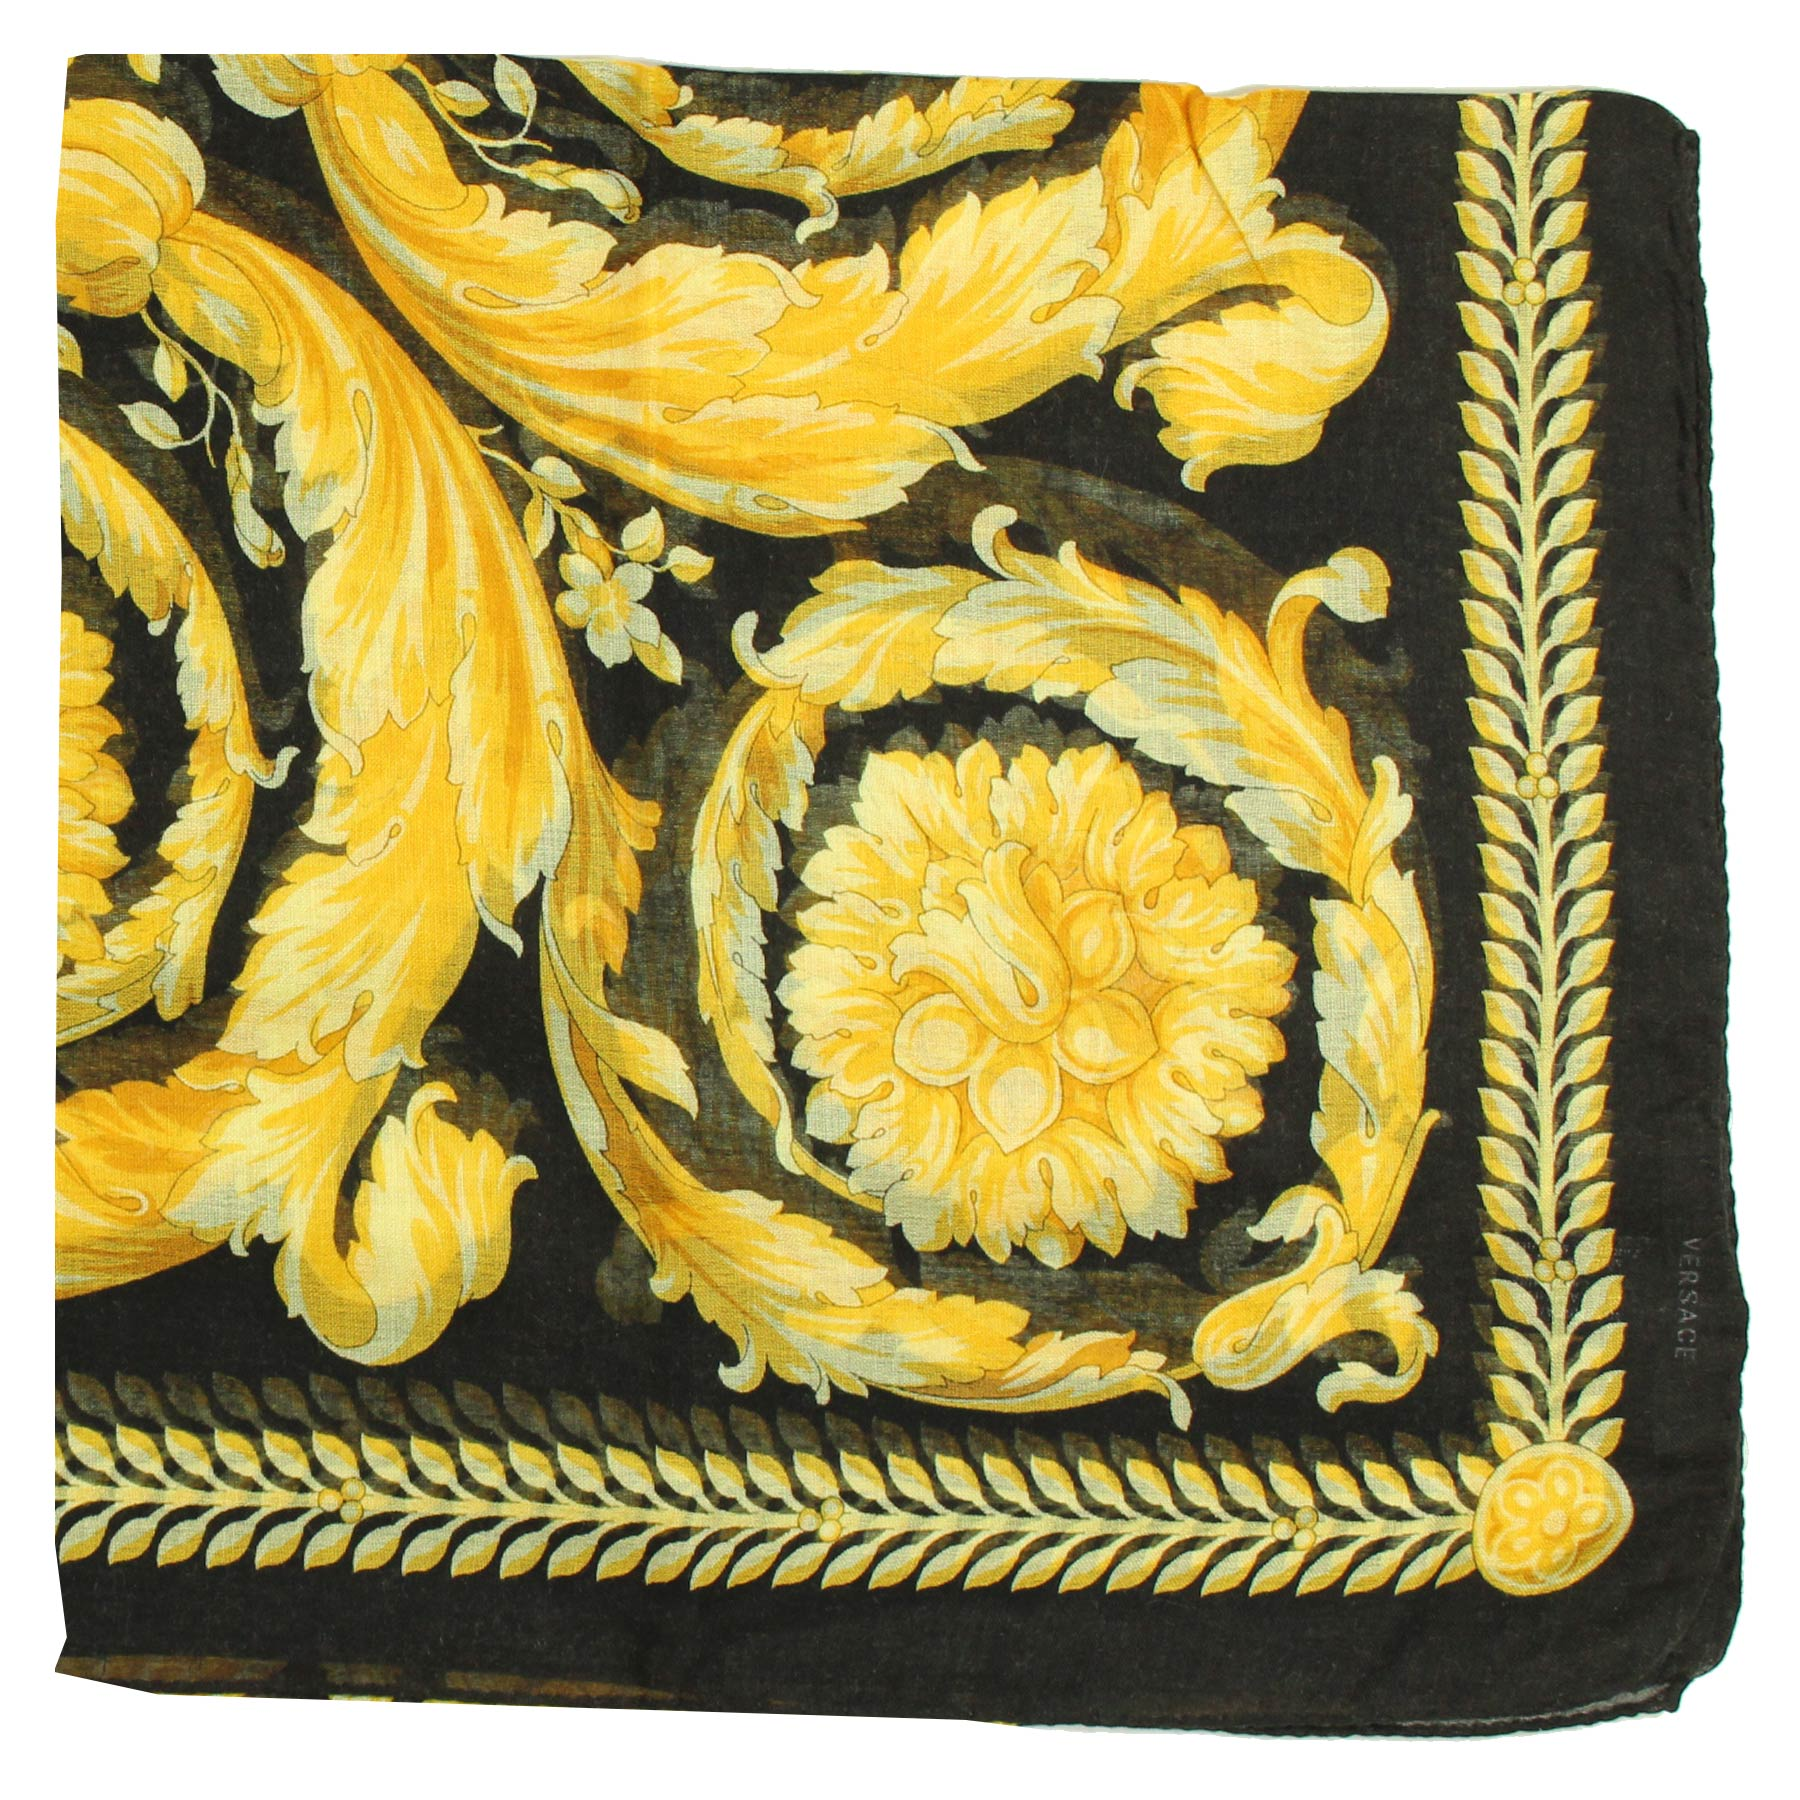 New Versace Scarf Black Gold Baroque & Medusa  Cashmere Extra Large Square Scarf